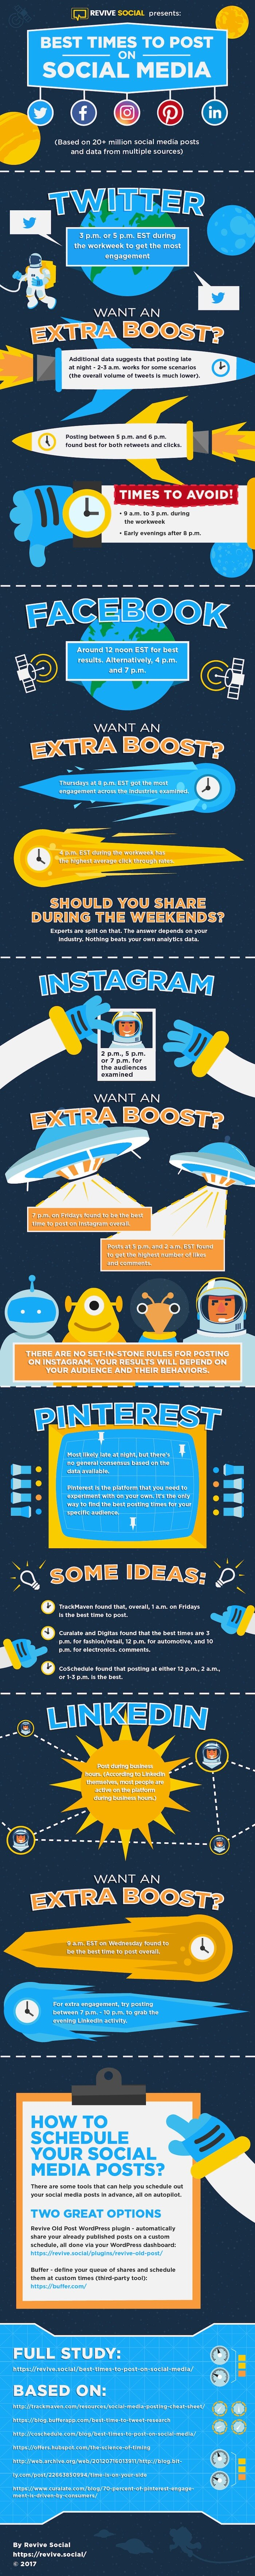 best-times-to-post-on-social-media-infographic-1